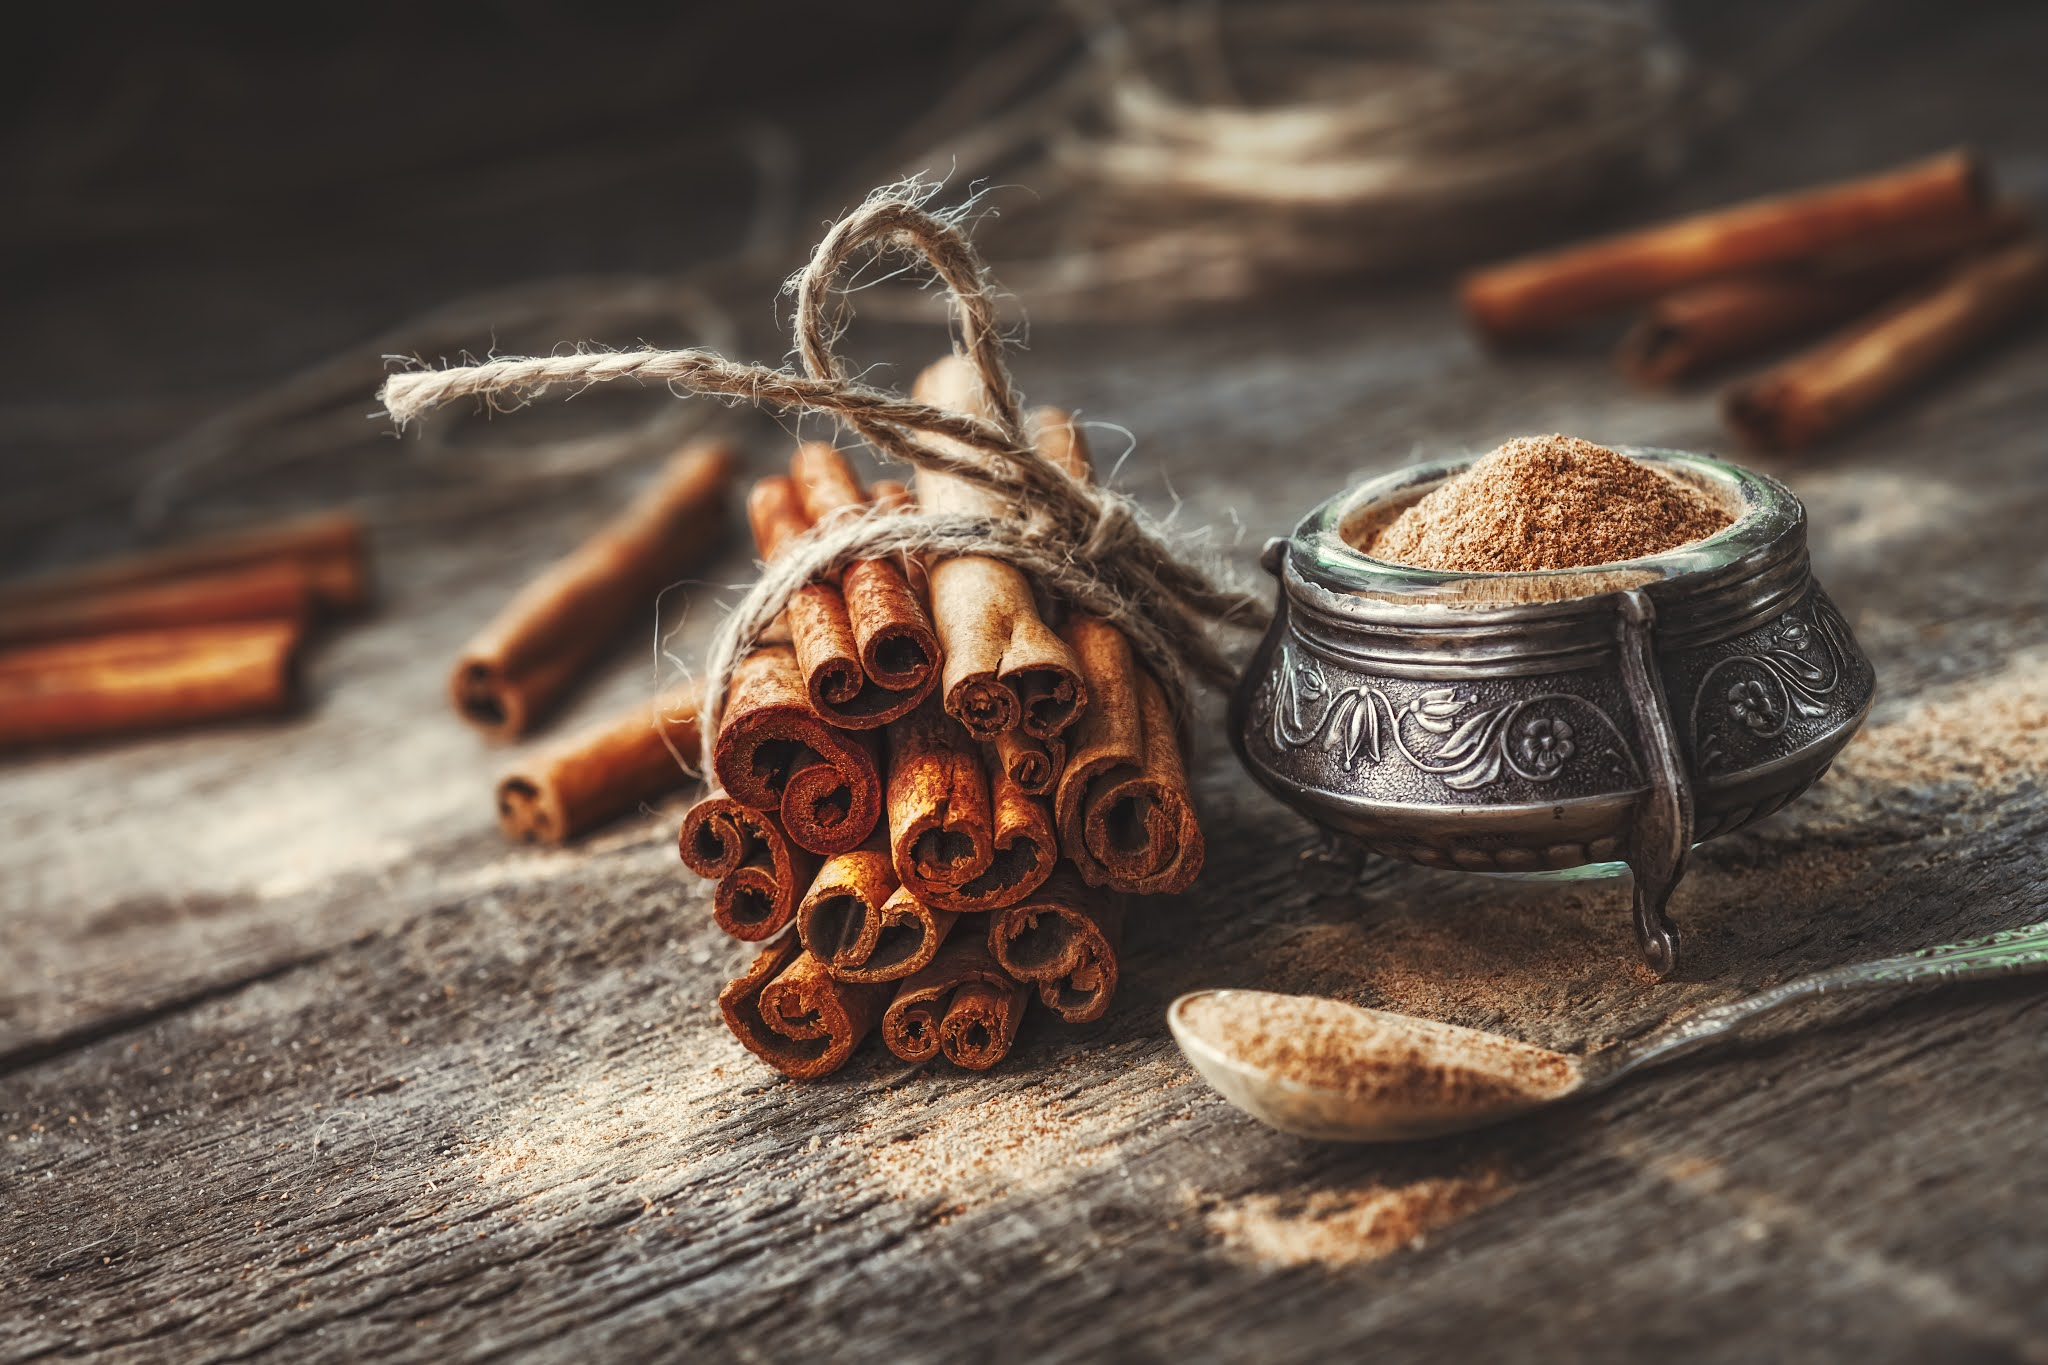 reduce acidity problem naturally at home by Cinnamon